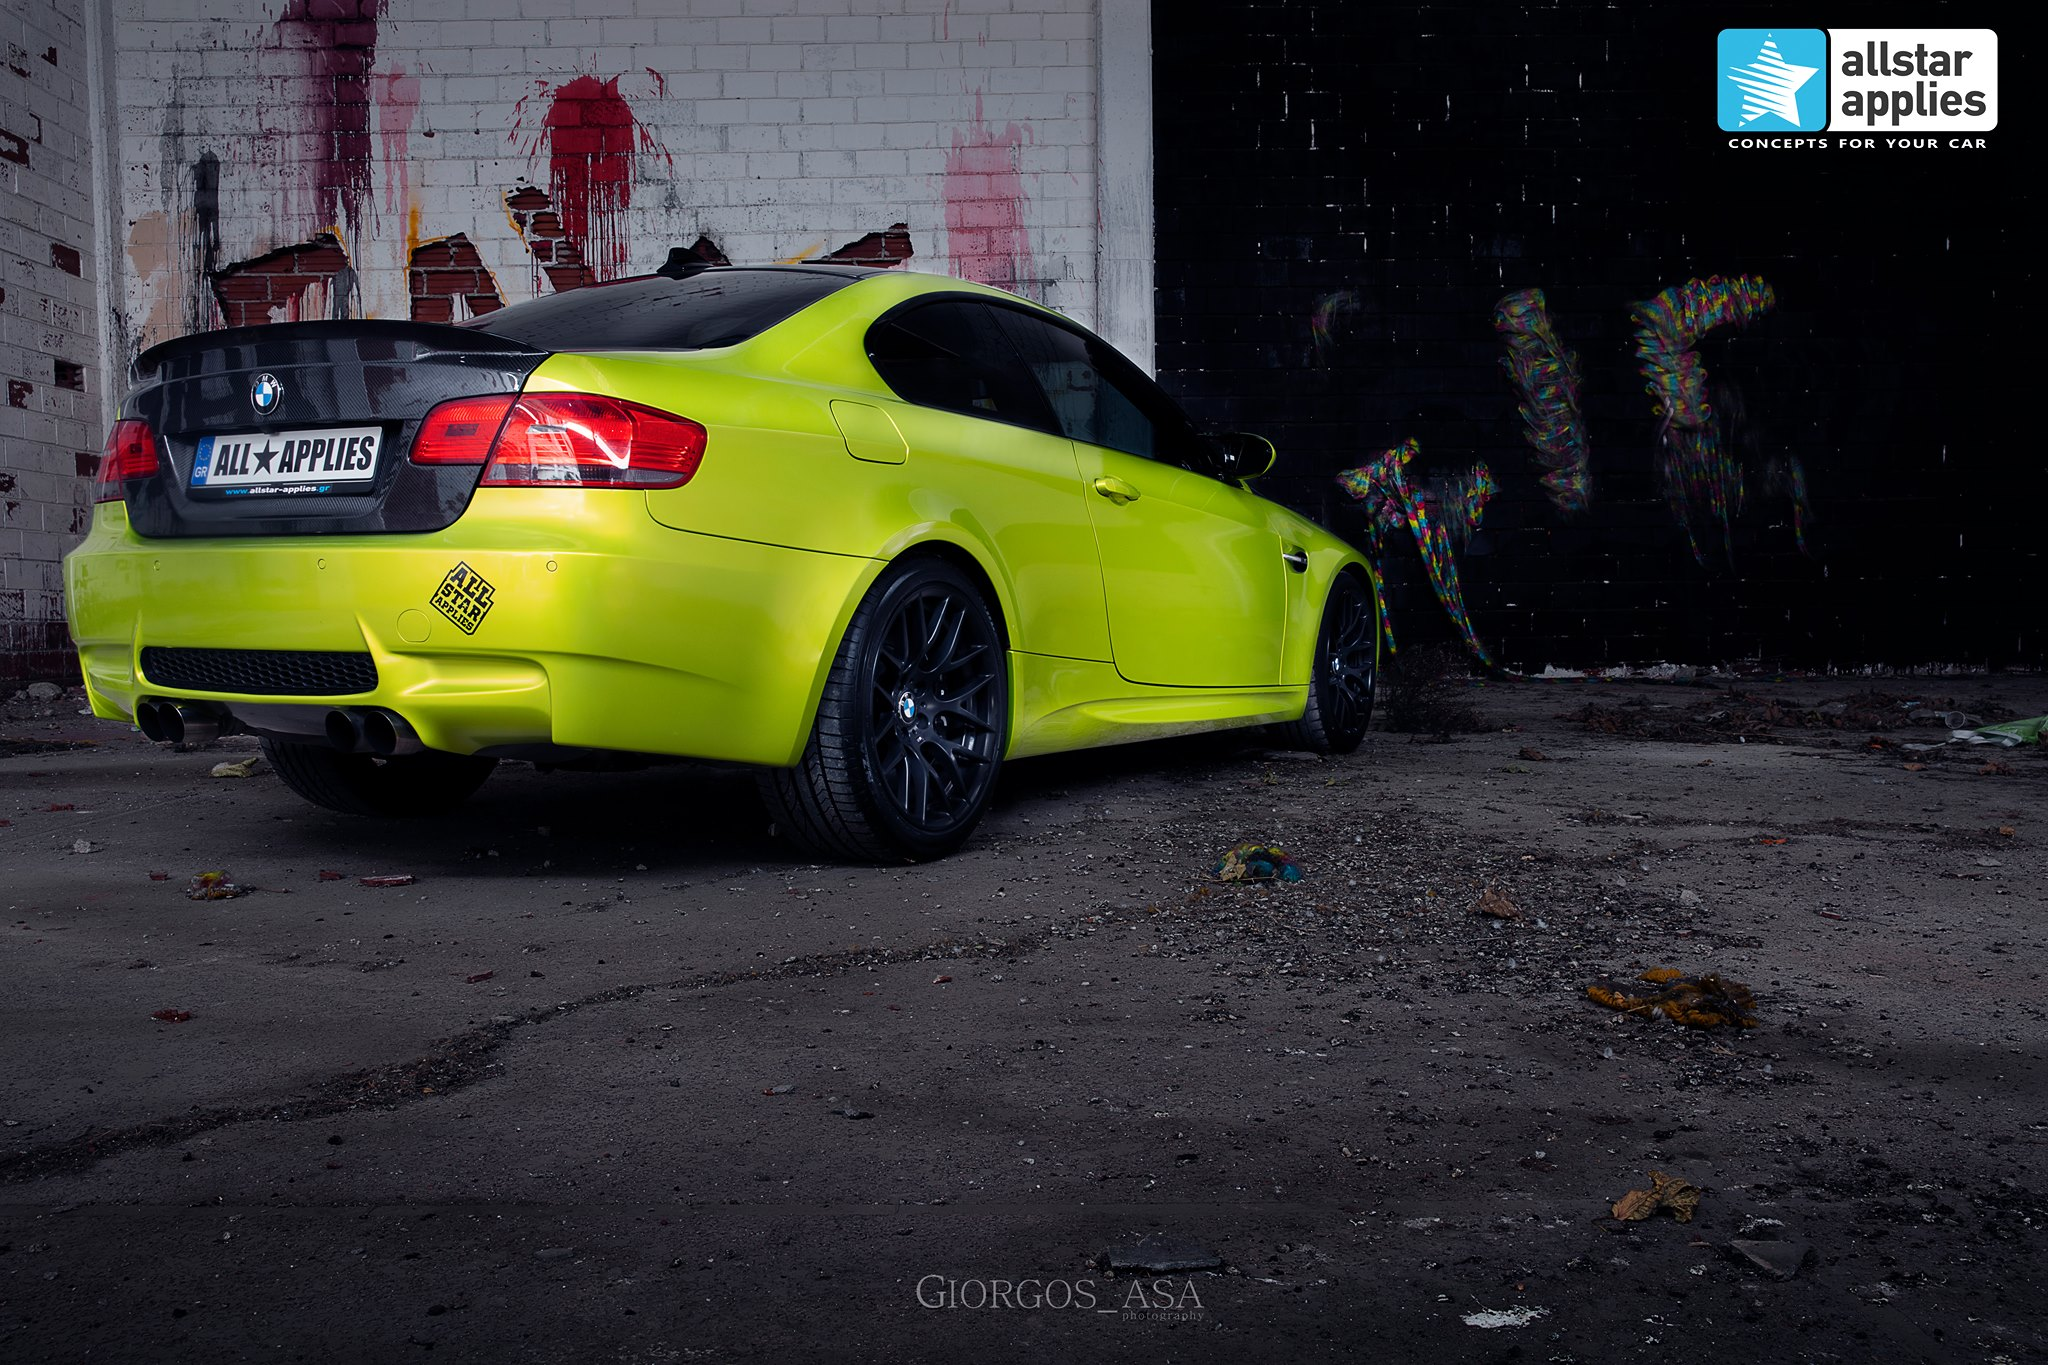 Bmw M3 - Electric Lime (3)